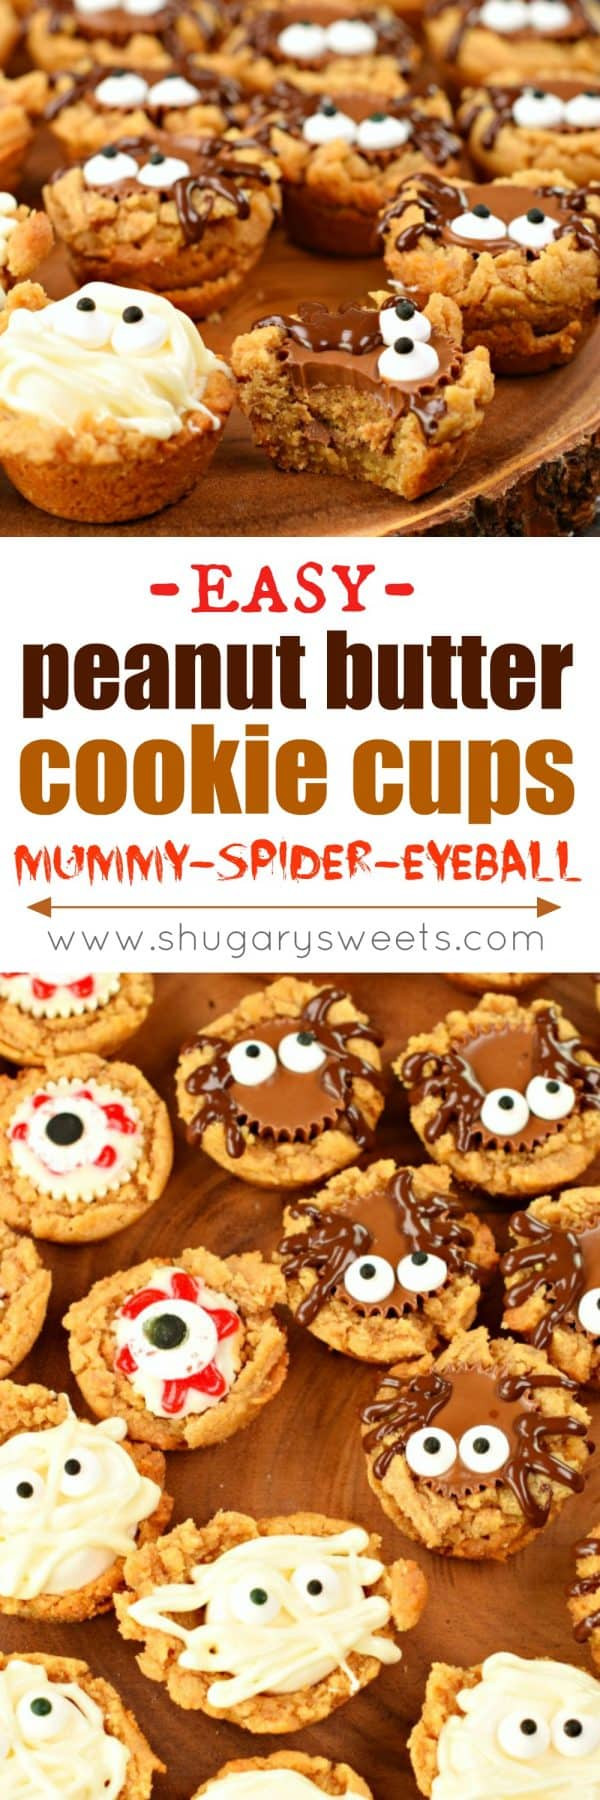 Halloween Peanut Butter Cookies  Halloween Peanut Butter Cookie Cups Shugary Sweets